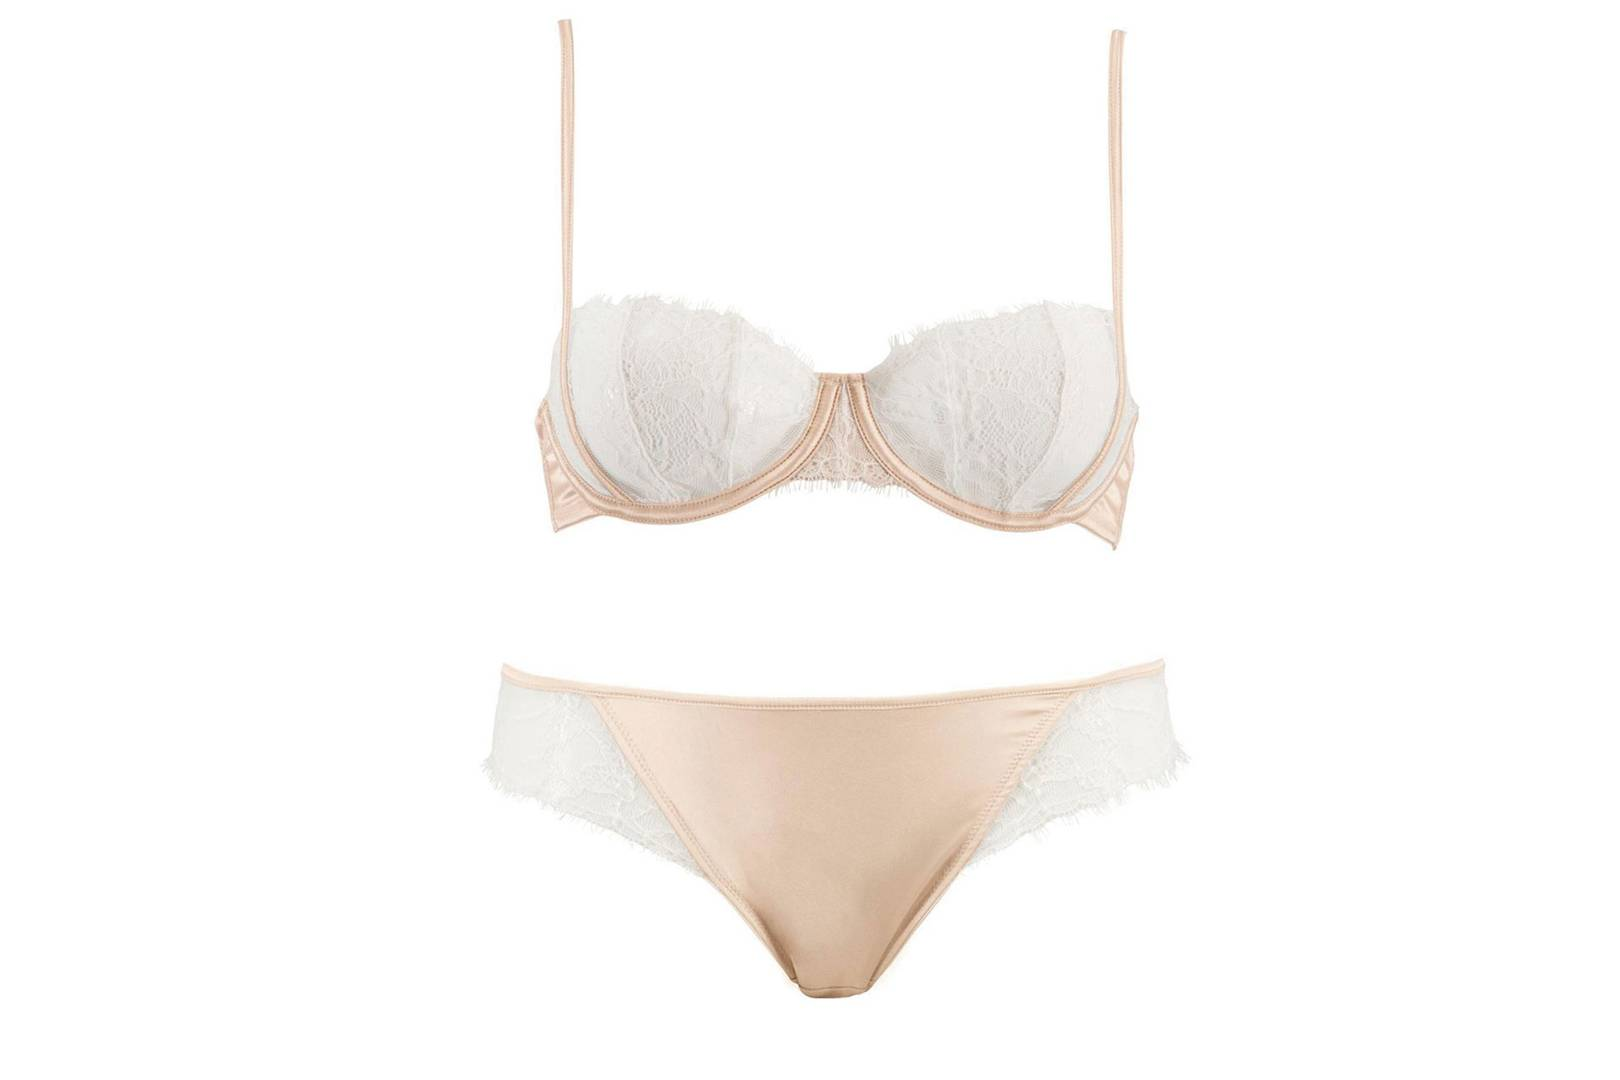 33b53345cc72 Best Bridal Lingerie 2018: The Vogue Edit | British Vogue